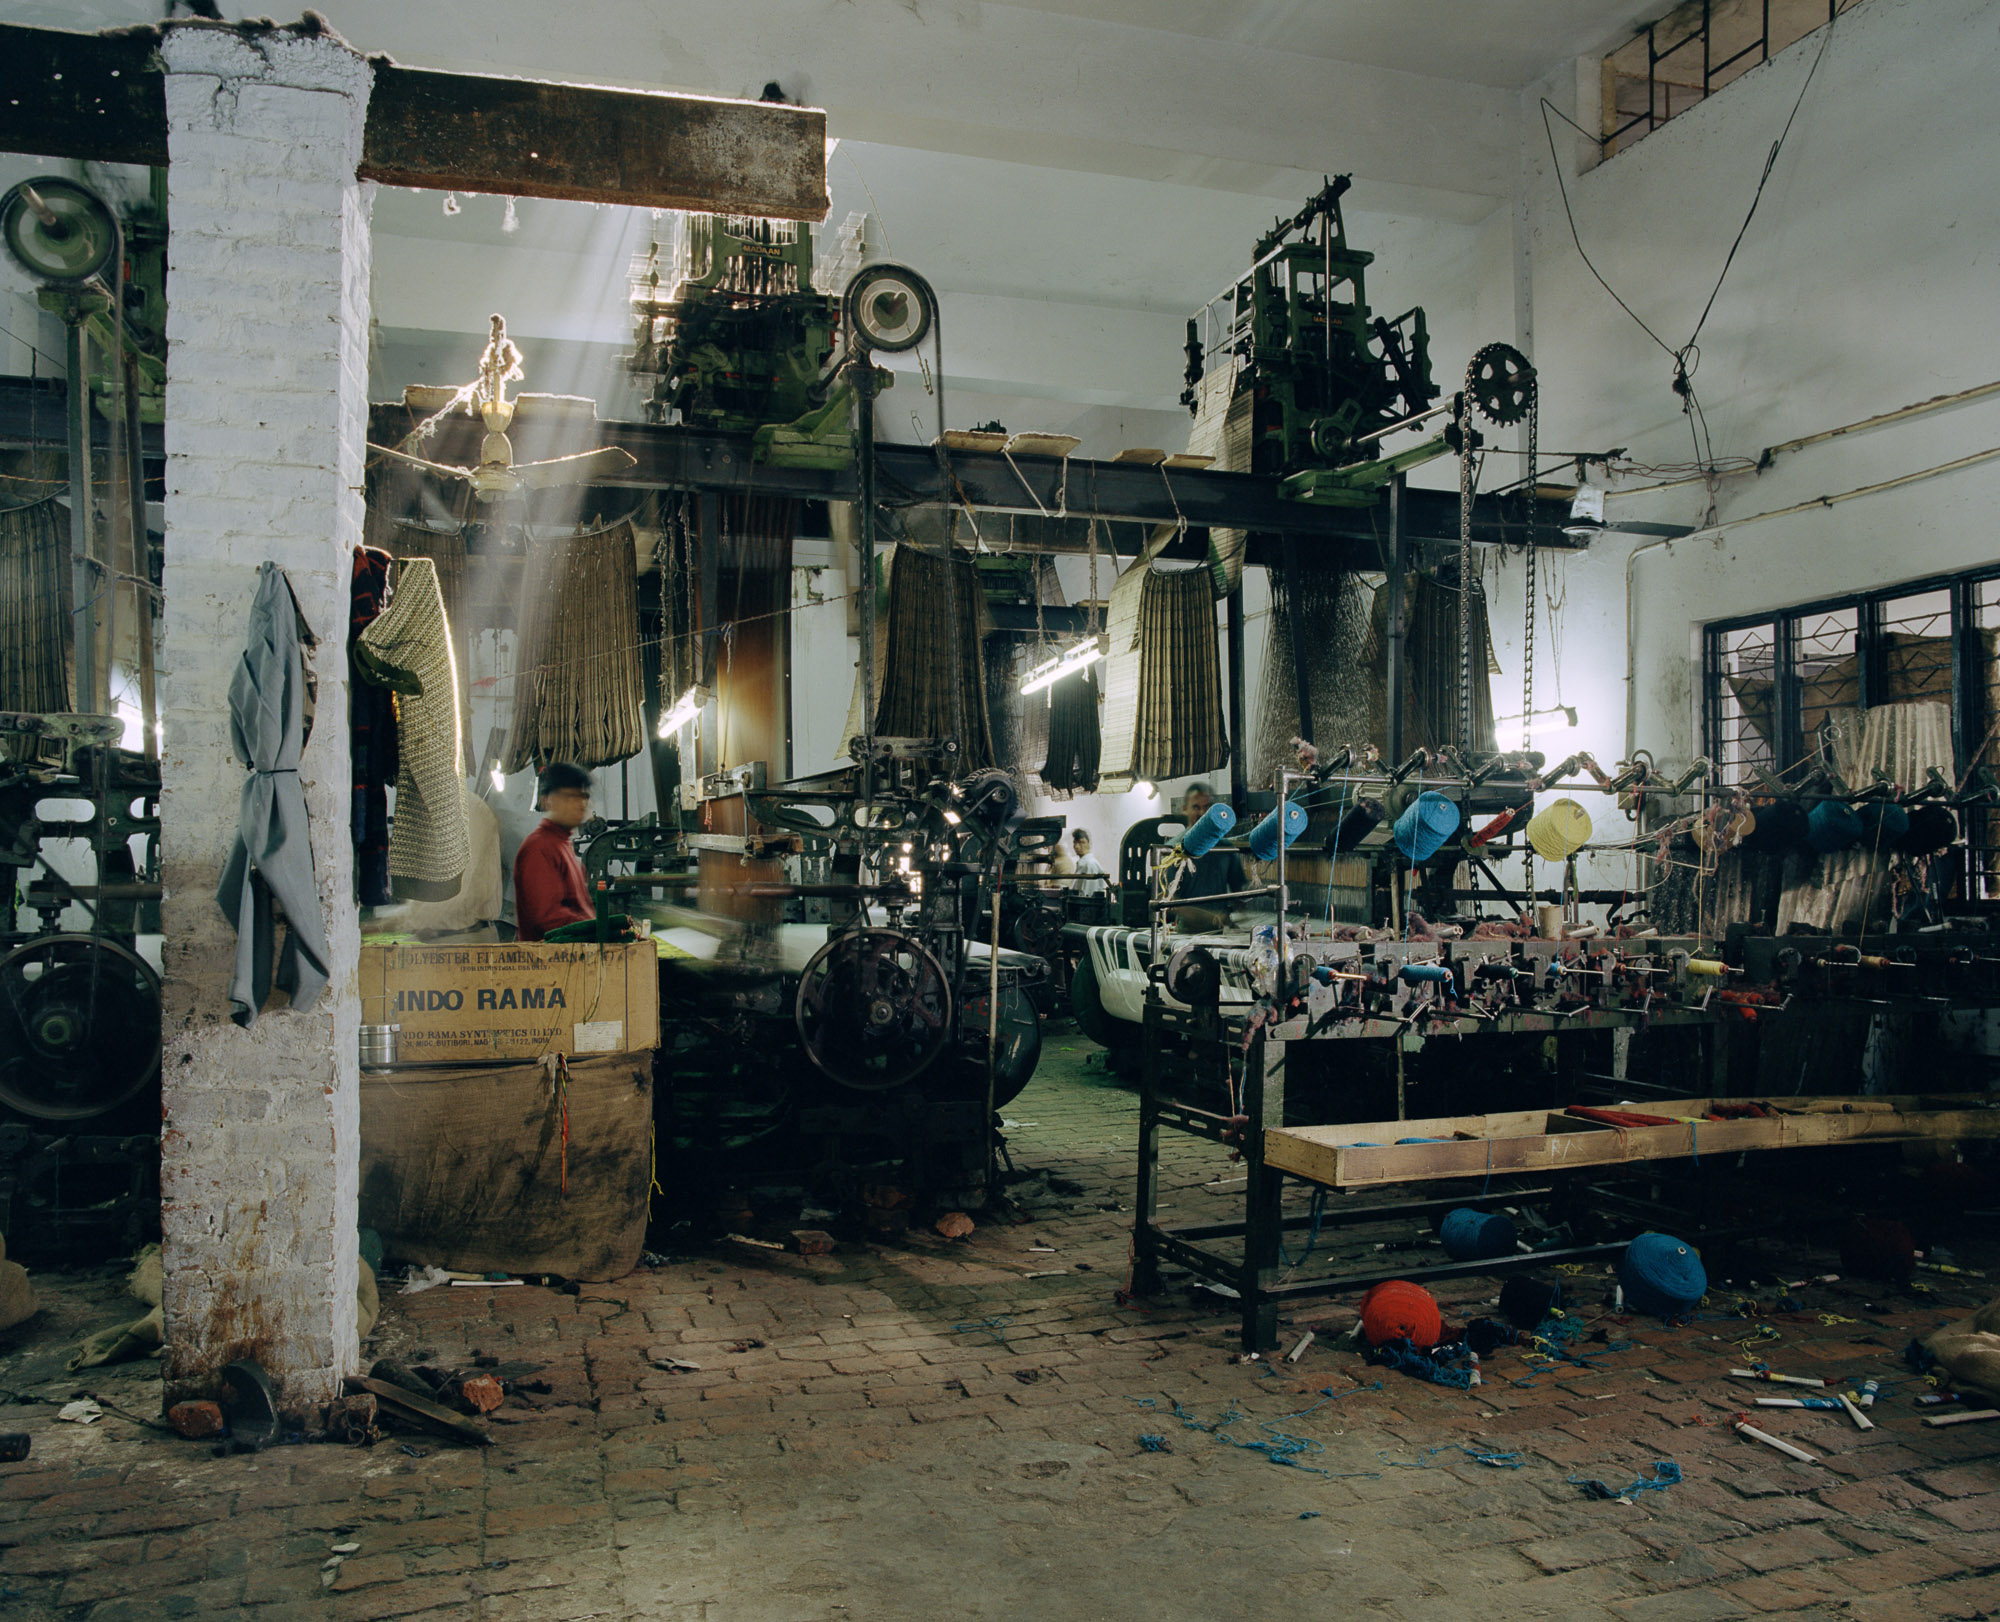 Other factories house heavy old power looms used for weaving shoddy blankets. Shoddy weaving expanded rapidly in the 1980s, using machinery imported from Italy and Poland.